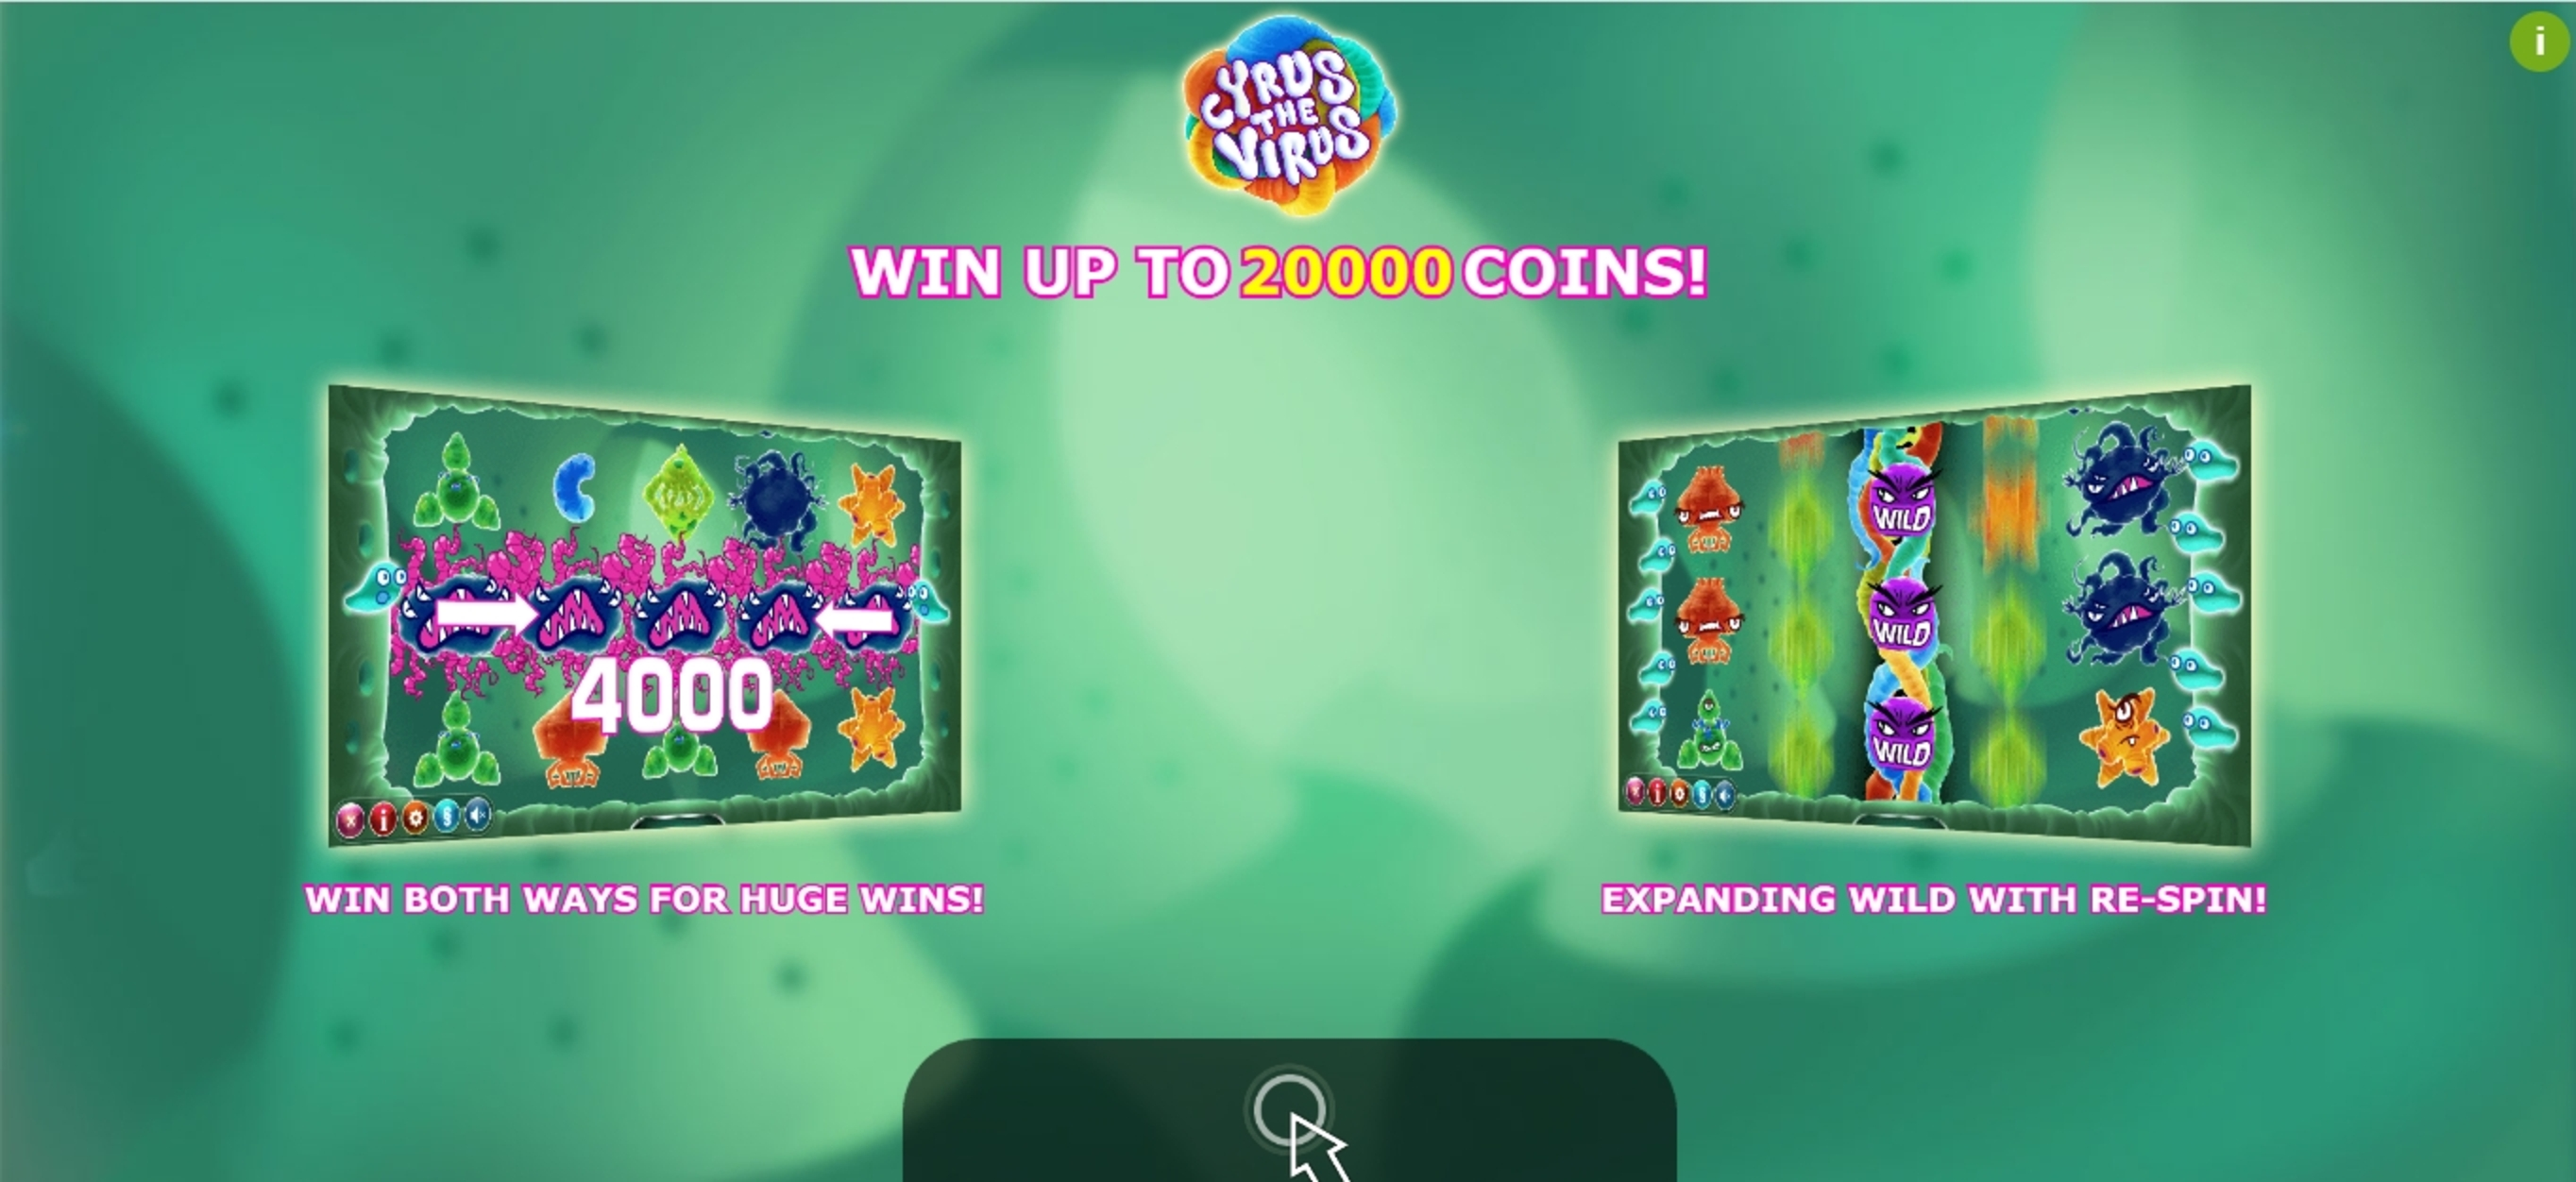 Play Cyrus the Virus Free Casino Slot Game by Yggdrasil